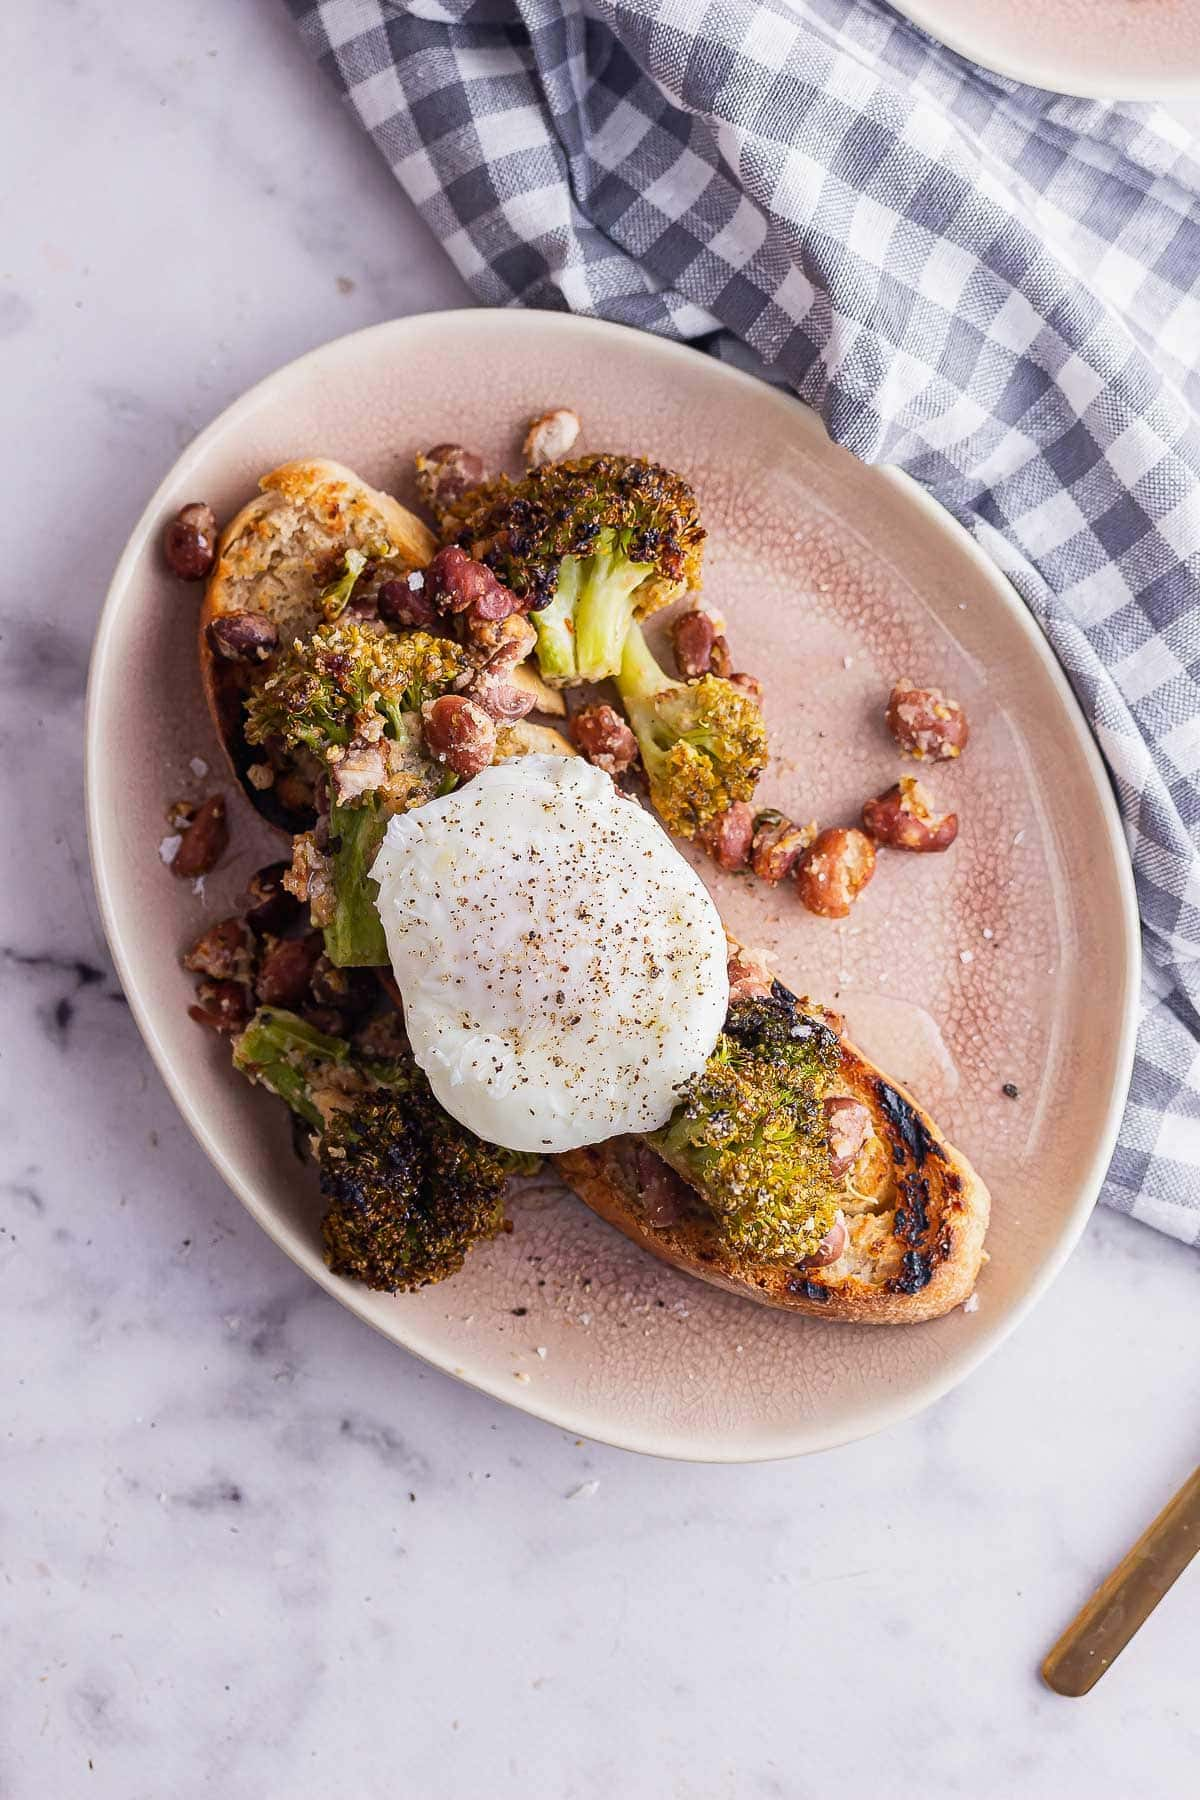 Overhead shot of roasted broccoli with beans on toast on a marble surface